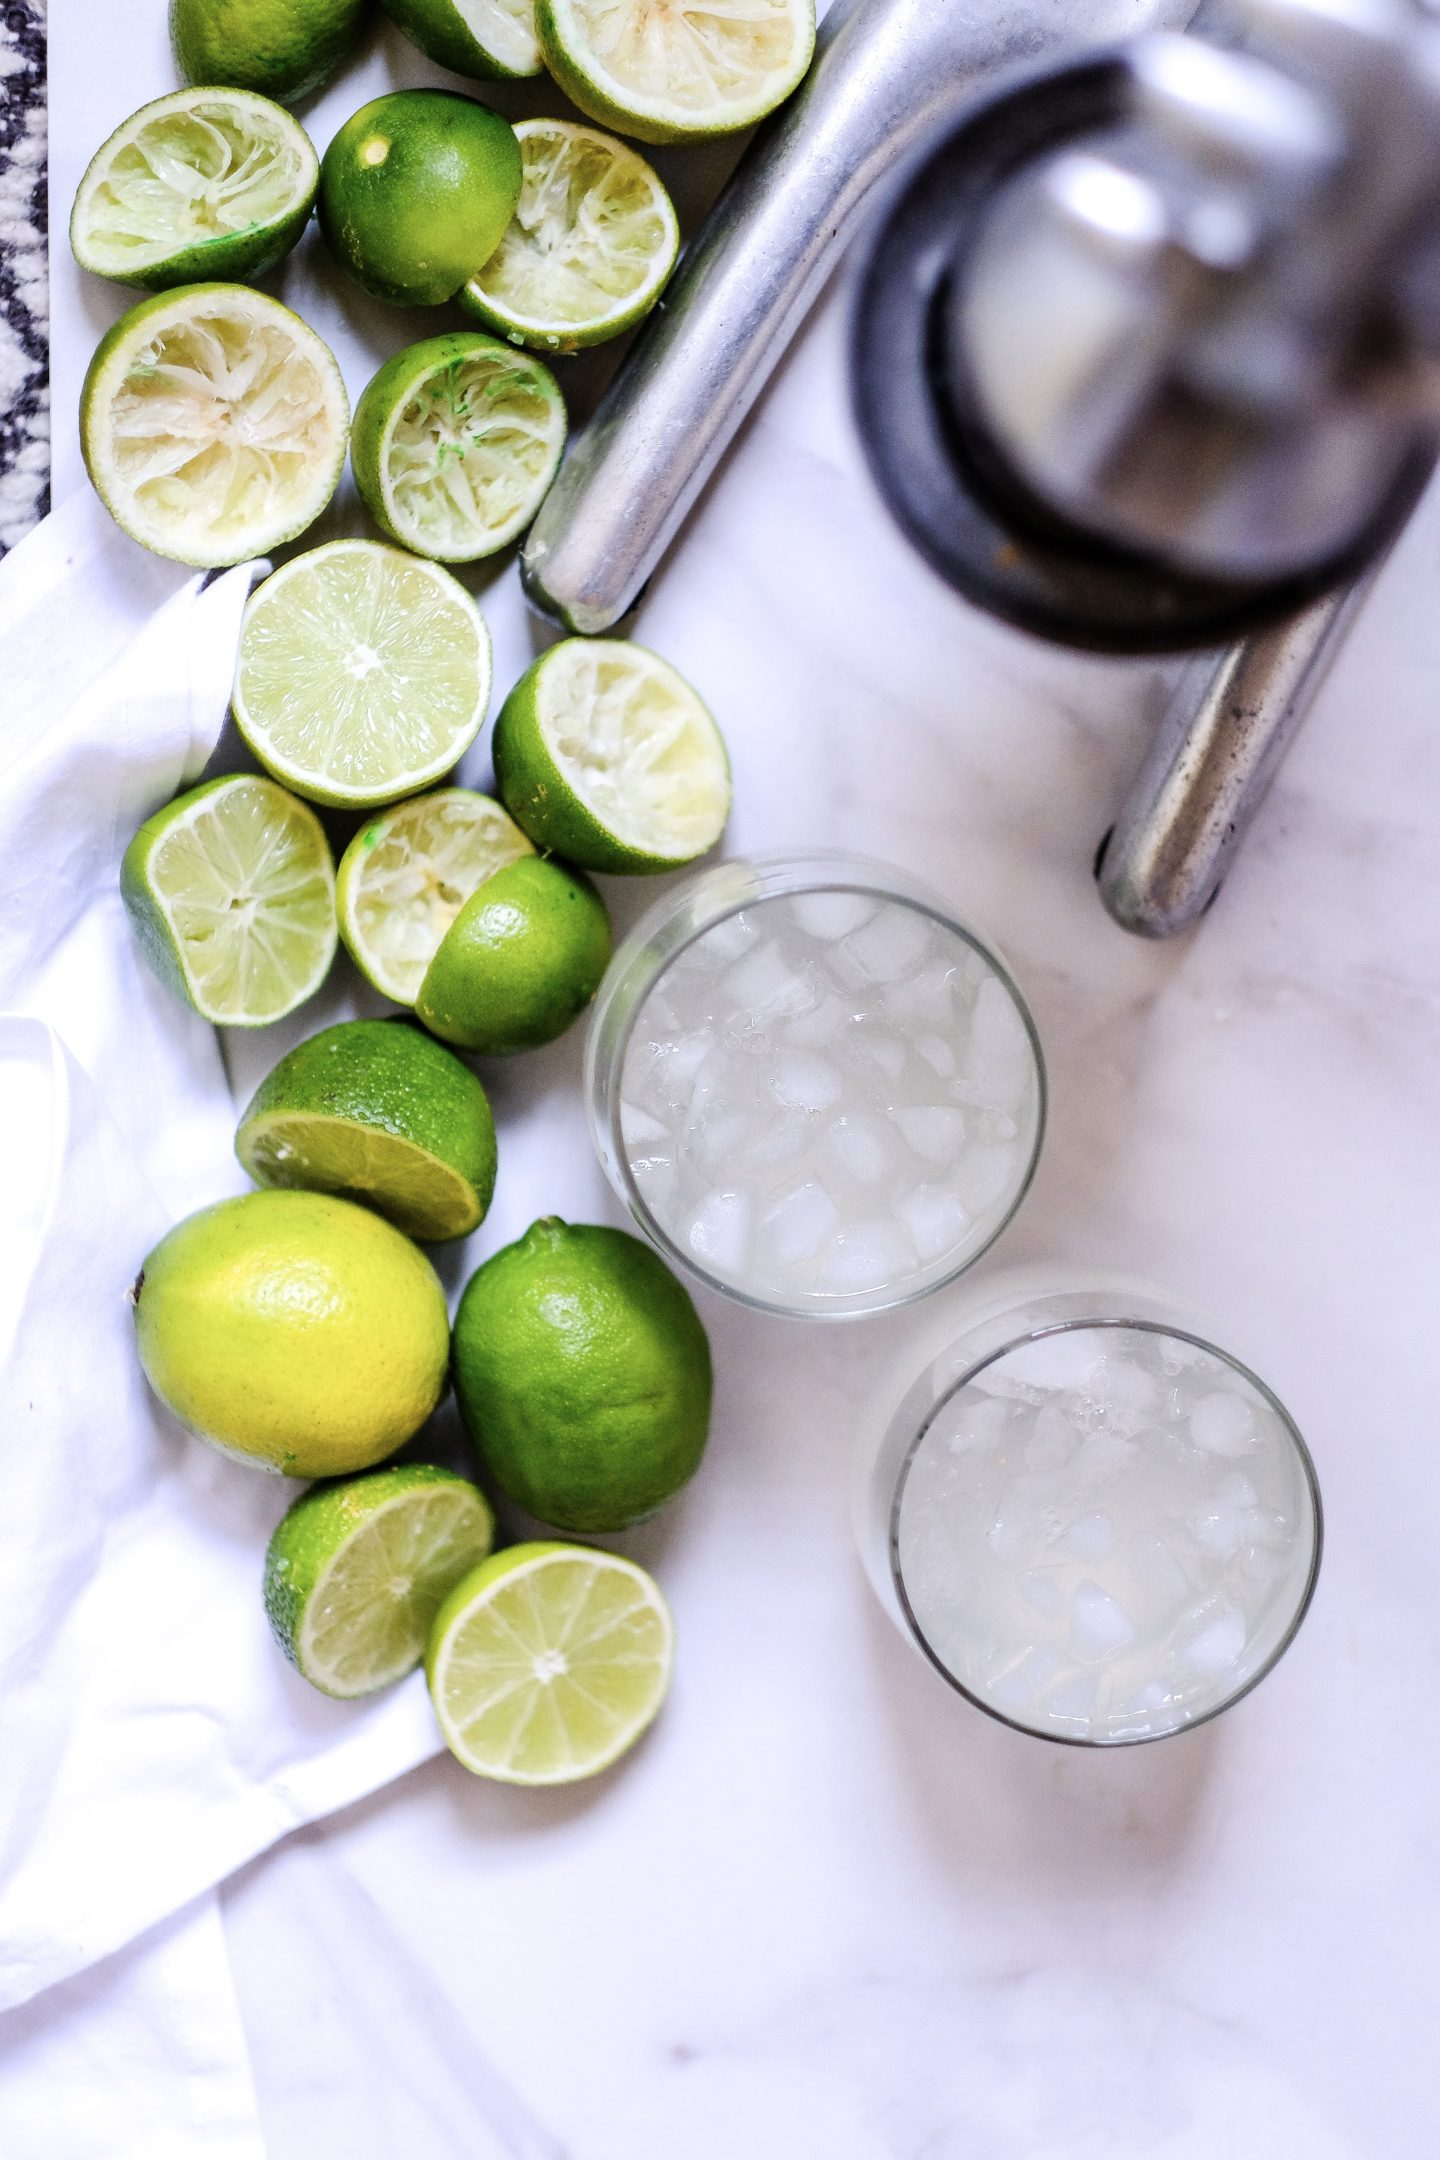 Lifestyle Blogger Jenny Meassick of Chocolate and Lace shares her recipe for Fresh Squeezed Limeade